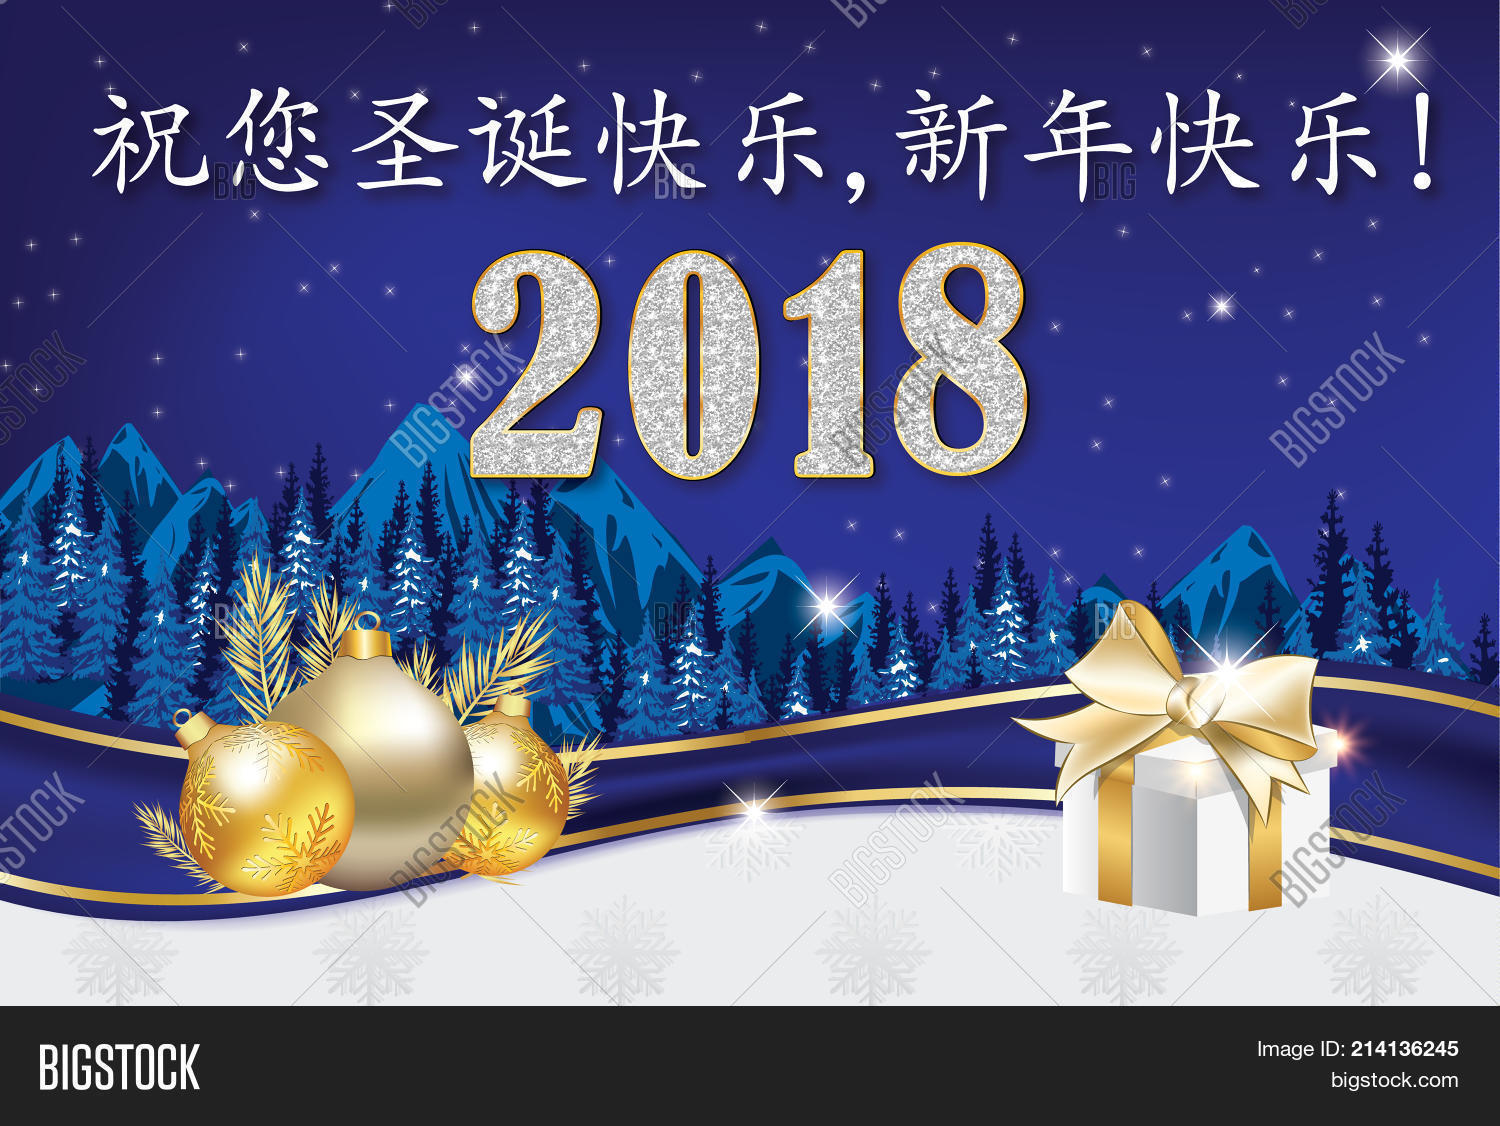 Christmas New Year Image Photo Free Trial Bigstock